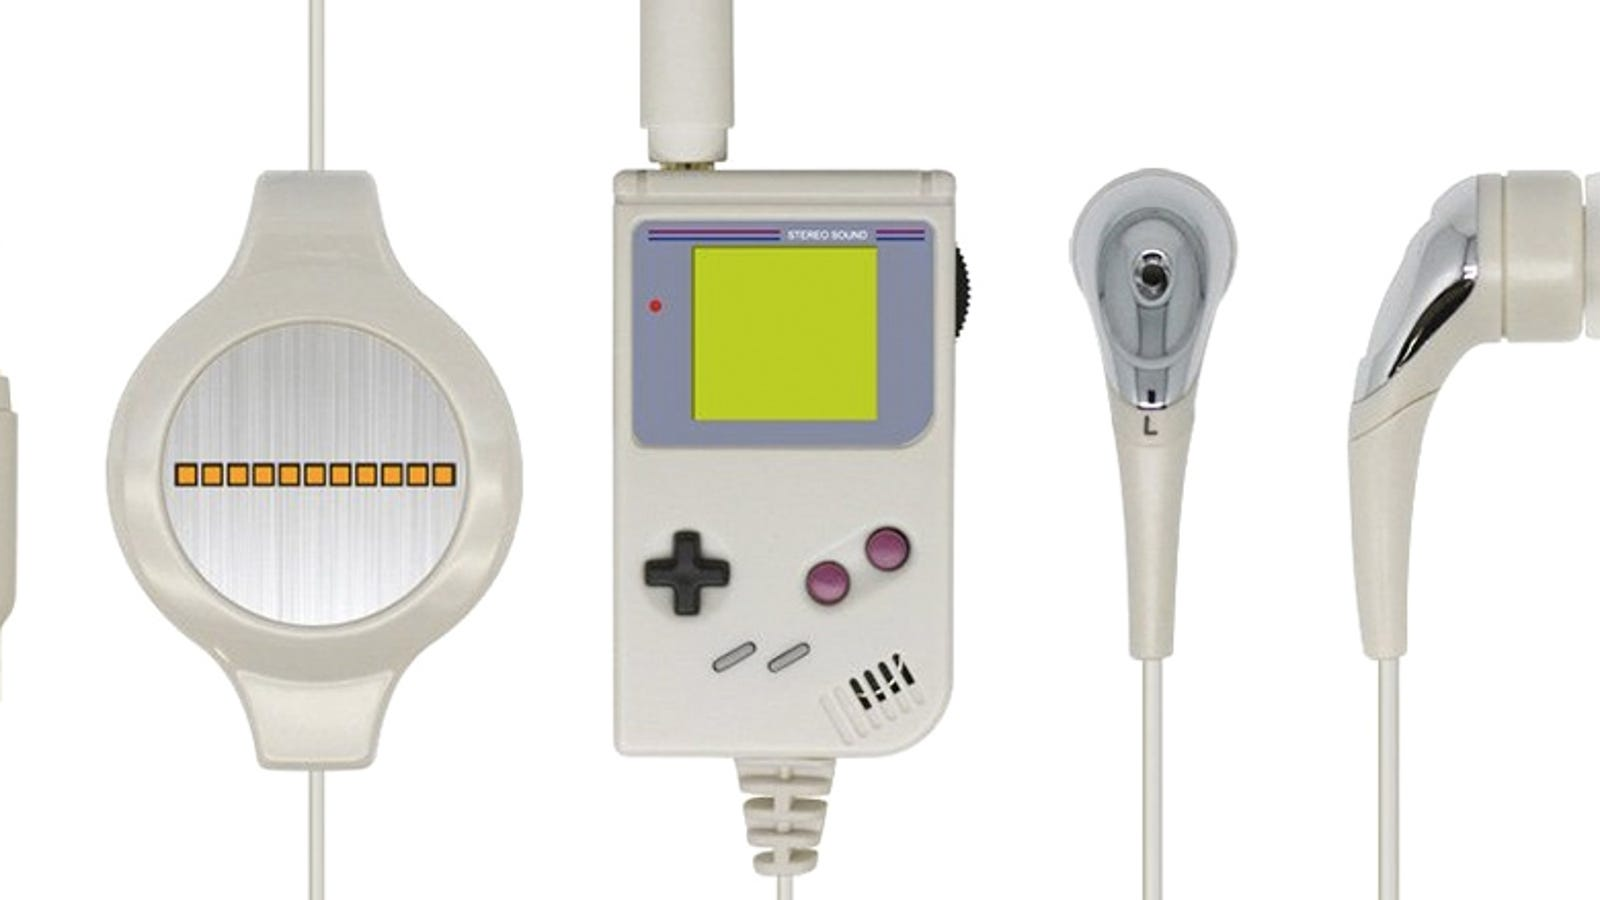 iphone 5 earbuds - These Tiny Game Boy Headphones Are Wonderful, Even If They Sound Awful